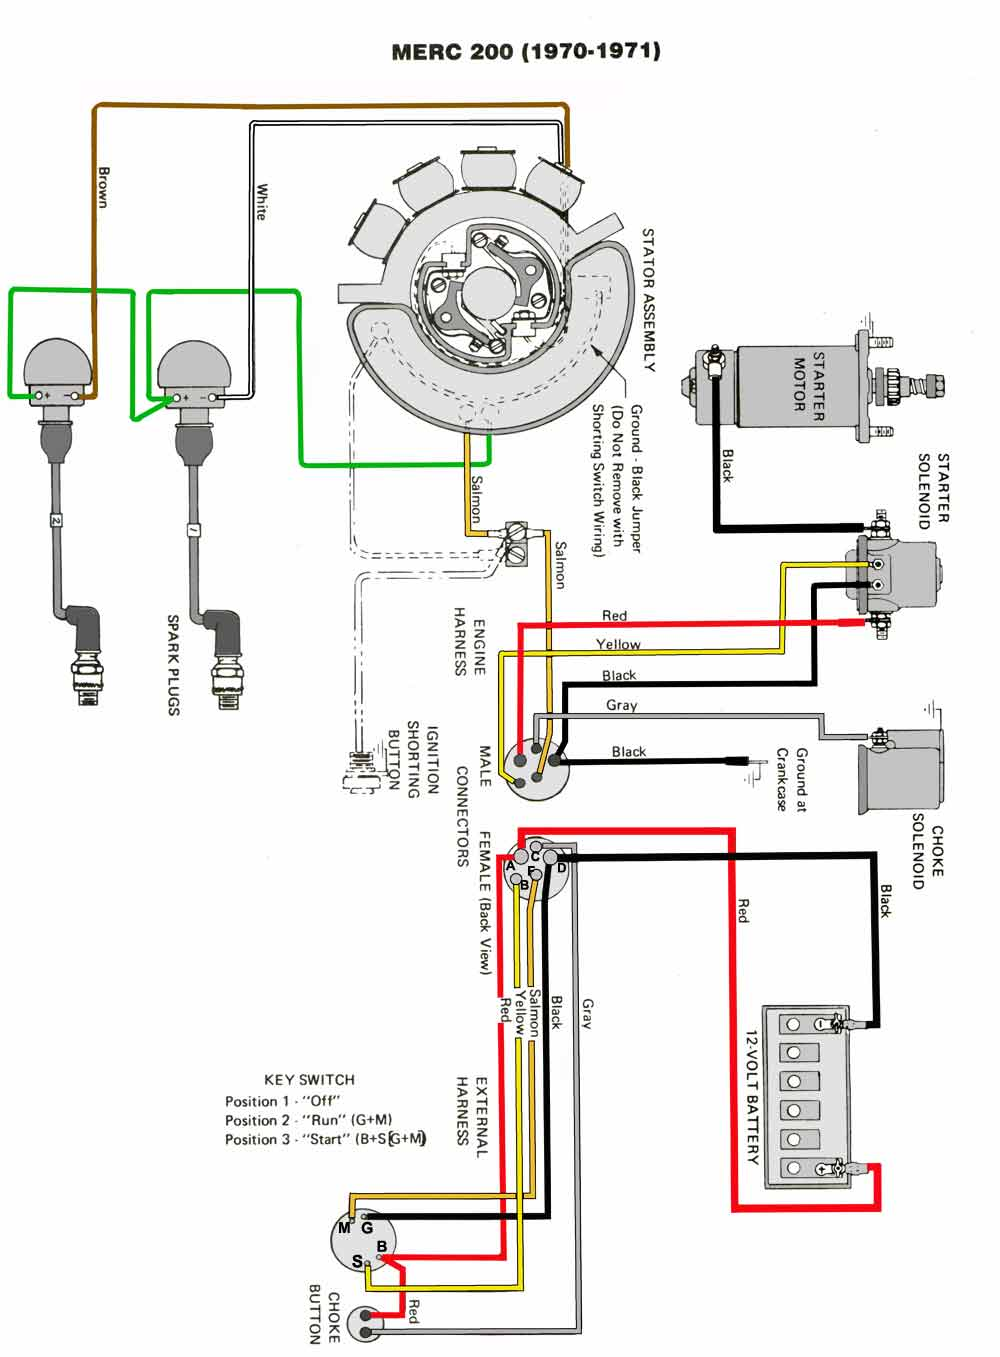 hight resolution of mercury outboard wire harness diagram wiring diagram post mercury 850 outboard wiring harness 1979 mercury outboard